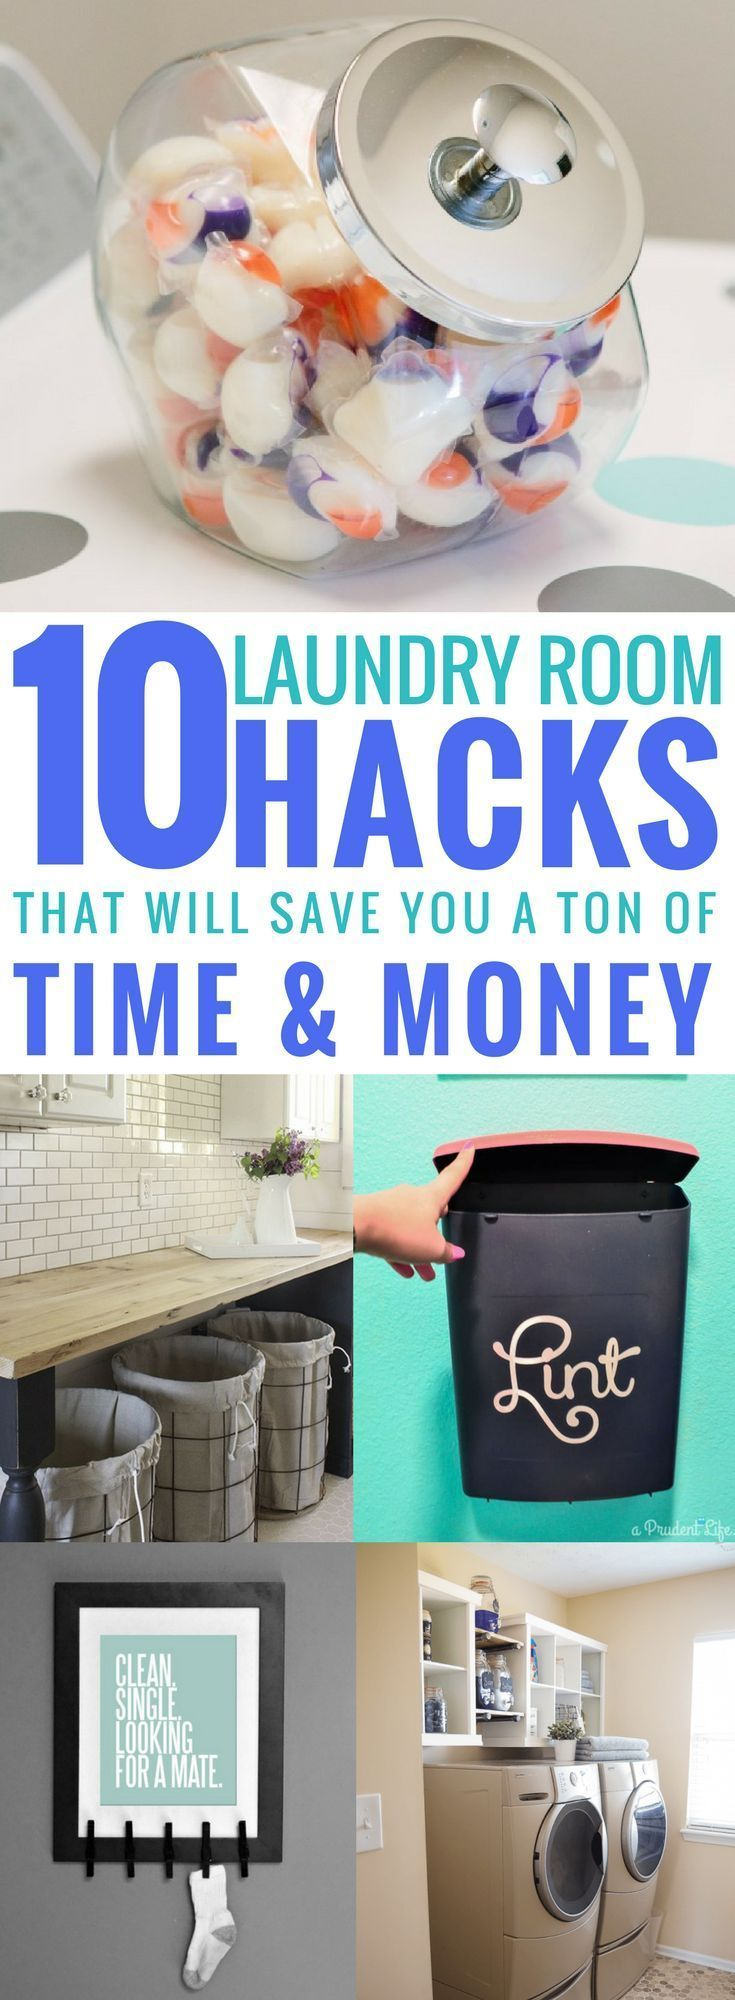 da2946d1a1f3a989fef191eb85ce9105 These 10 laundry room ideas are THE BEST! I'm so glad I found these AMAZING ...